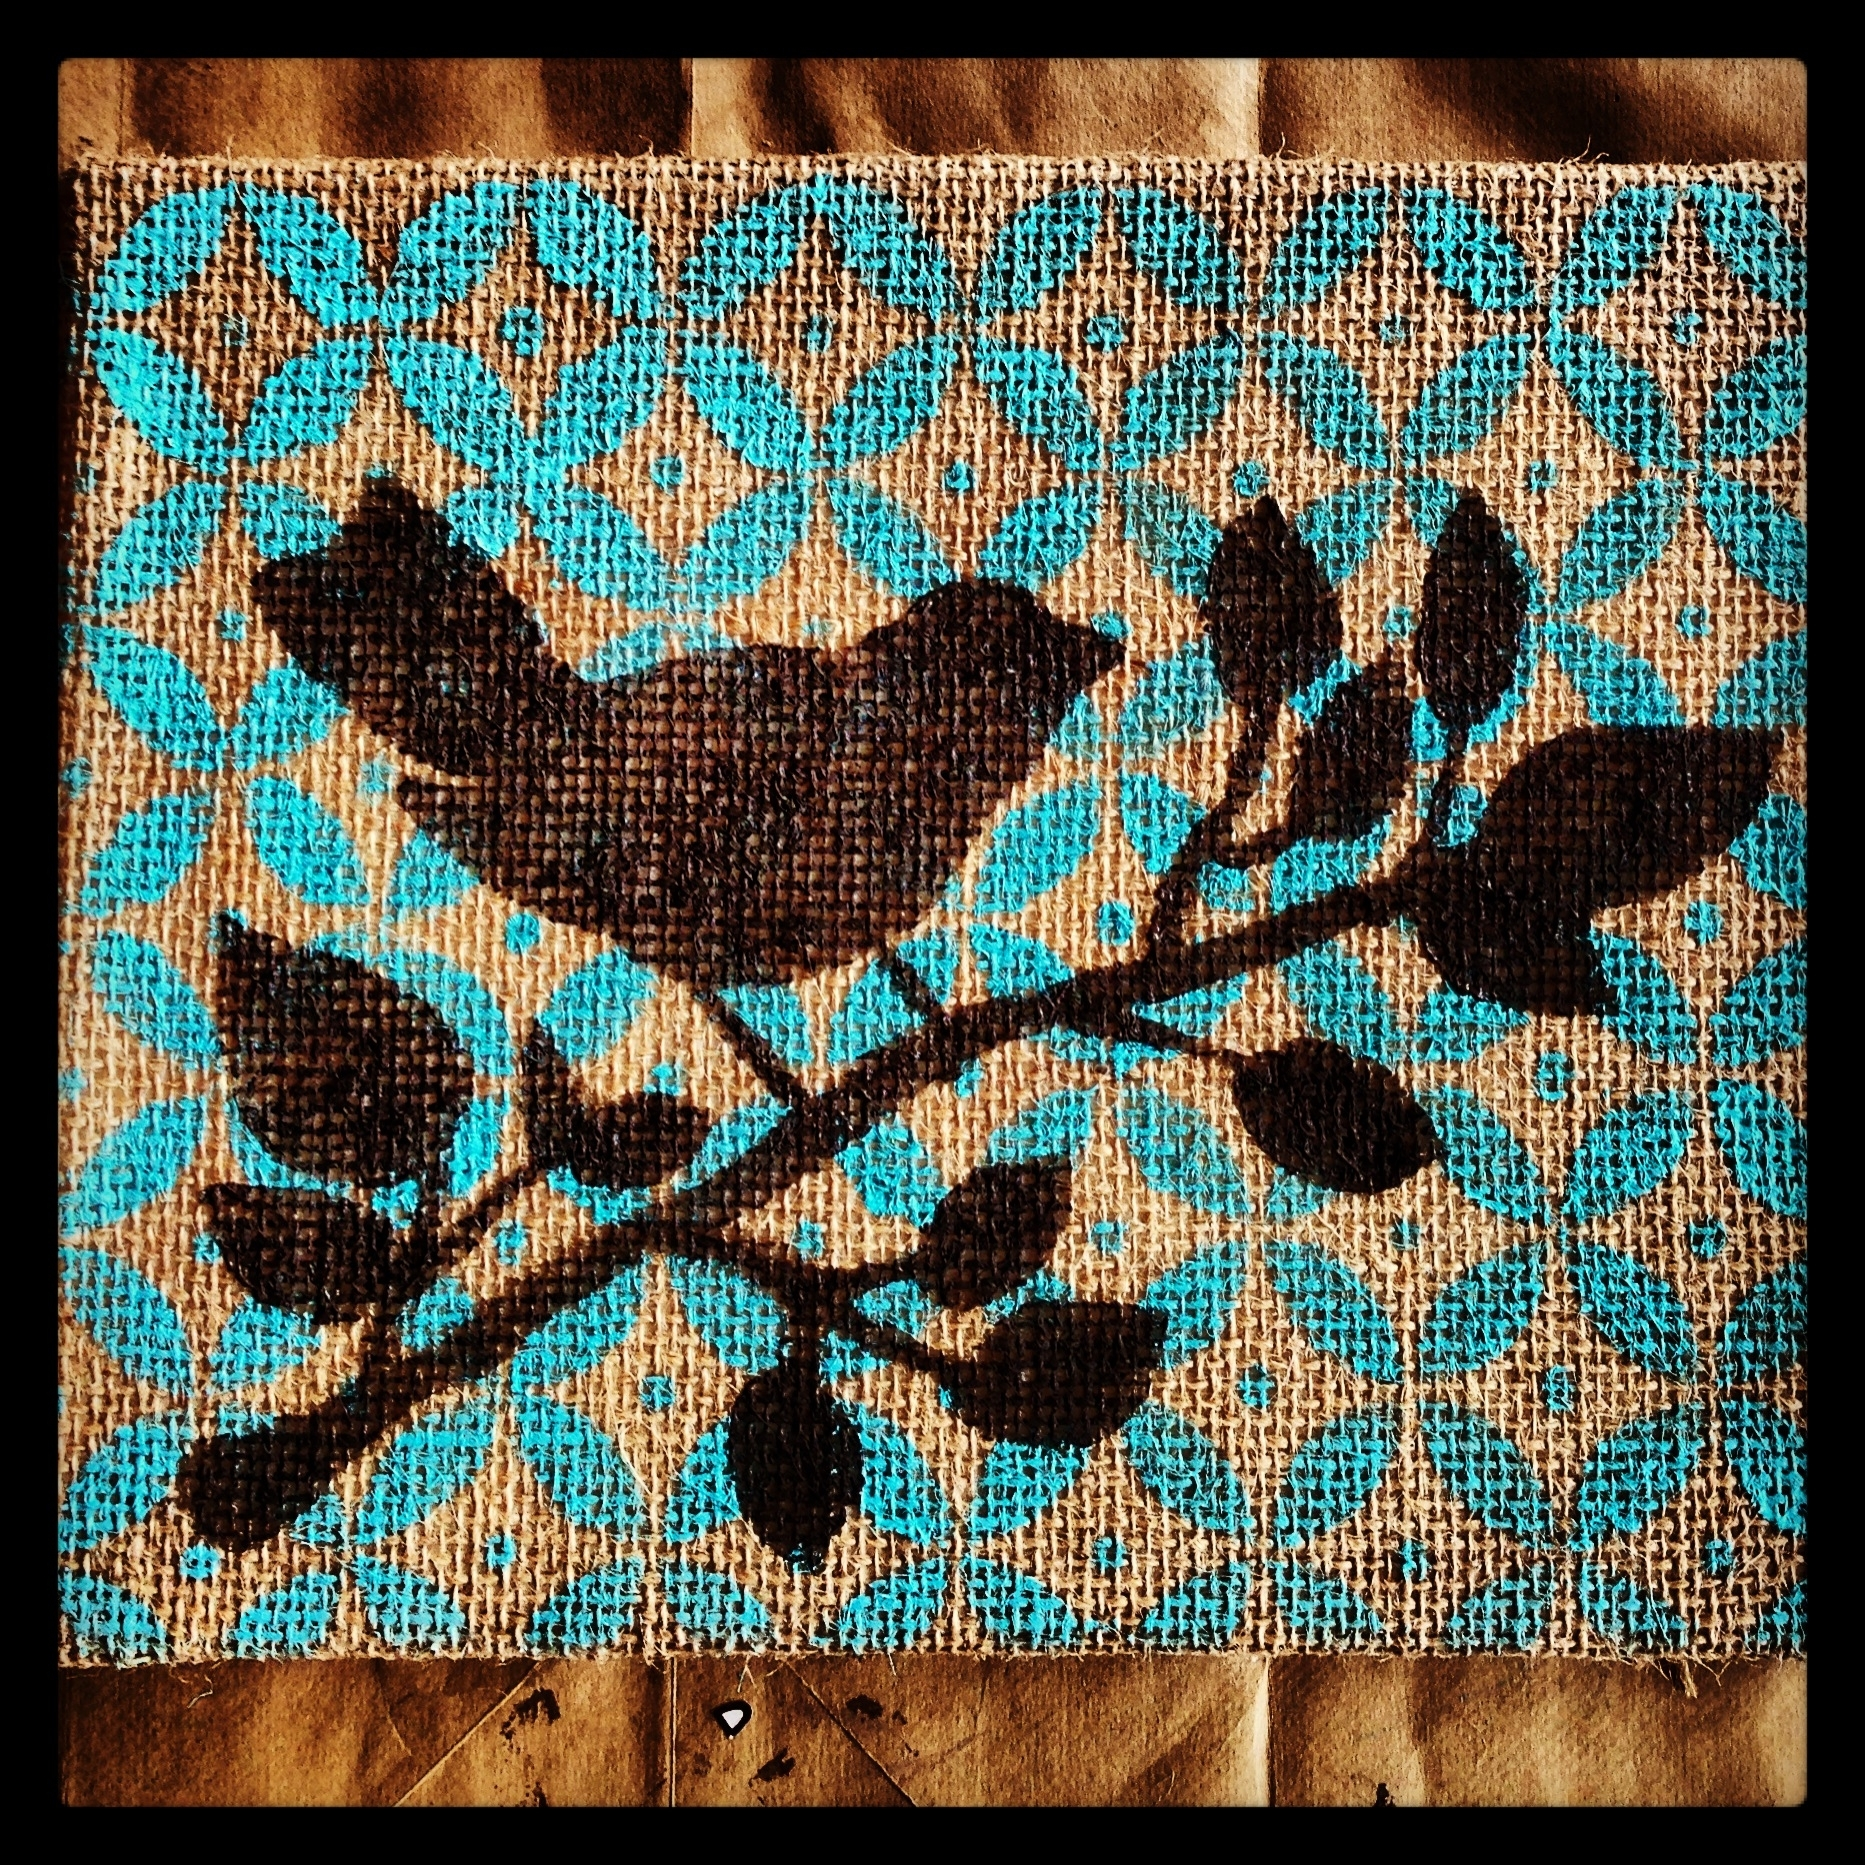 Stenciled Burlap Canvas Art | My Pinspiration Projects | Pinterest With Most Recently Released Burlap Fabric Wall Art (View 12 of 15)